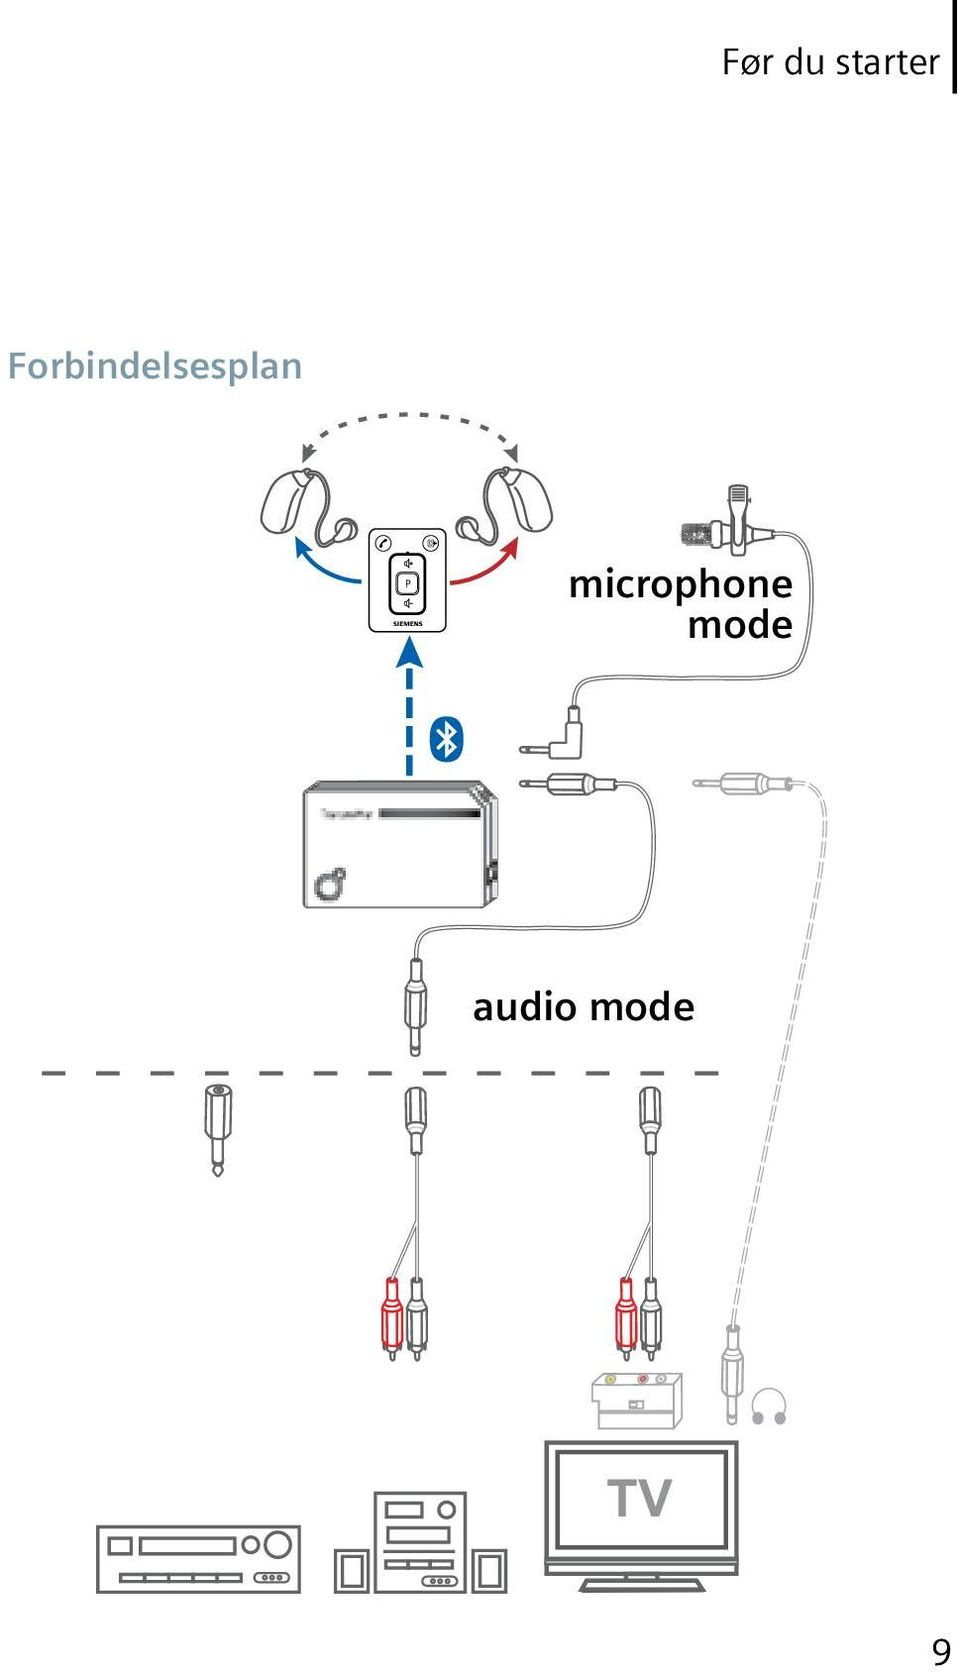 microphone mode